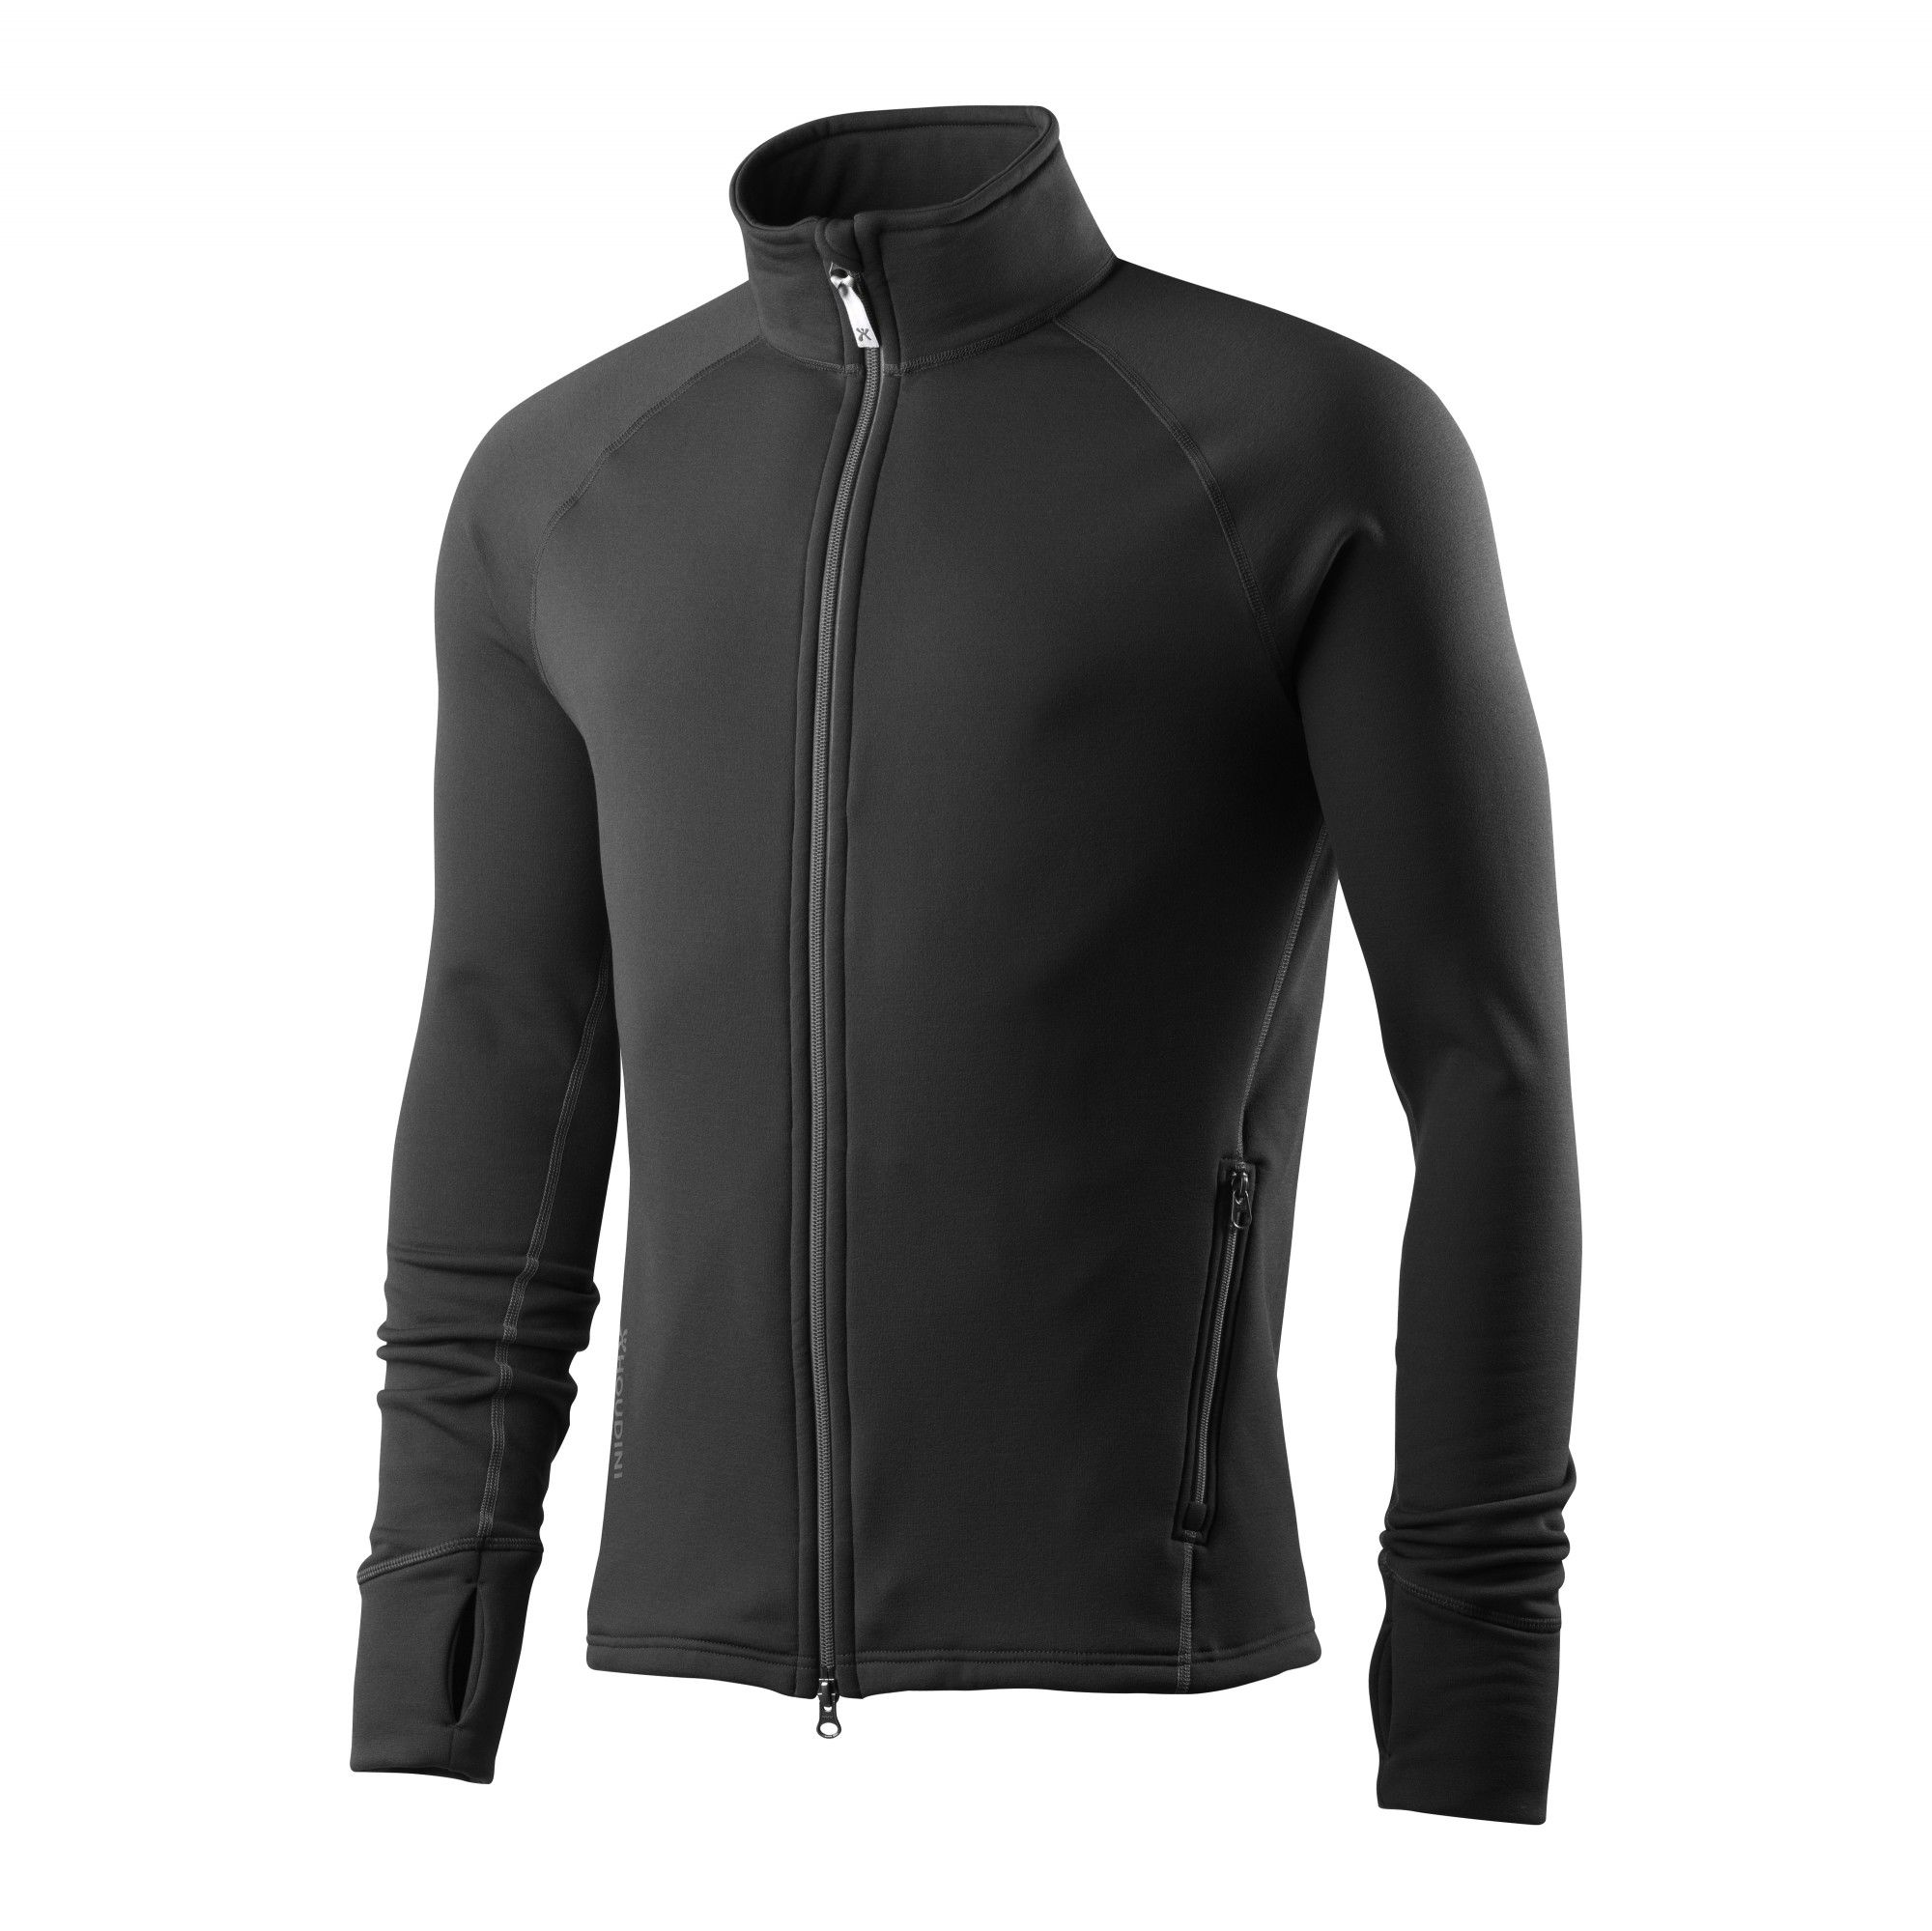 Houdini M Power Jacket | Herren Fleecejacke